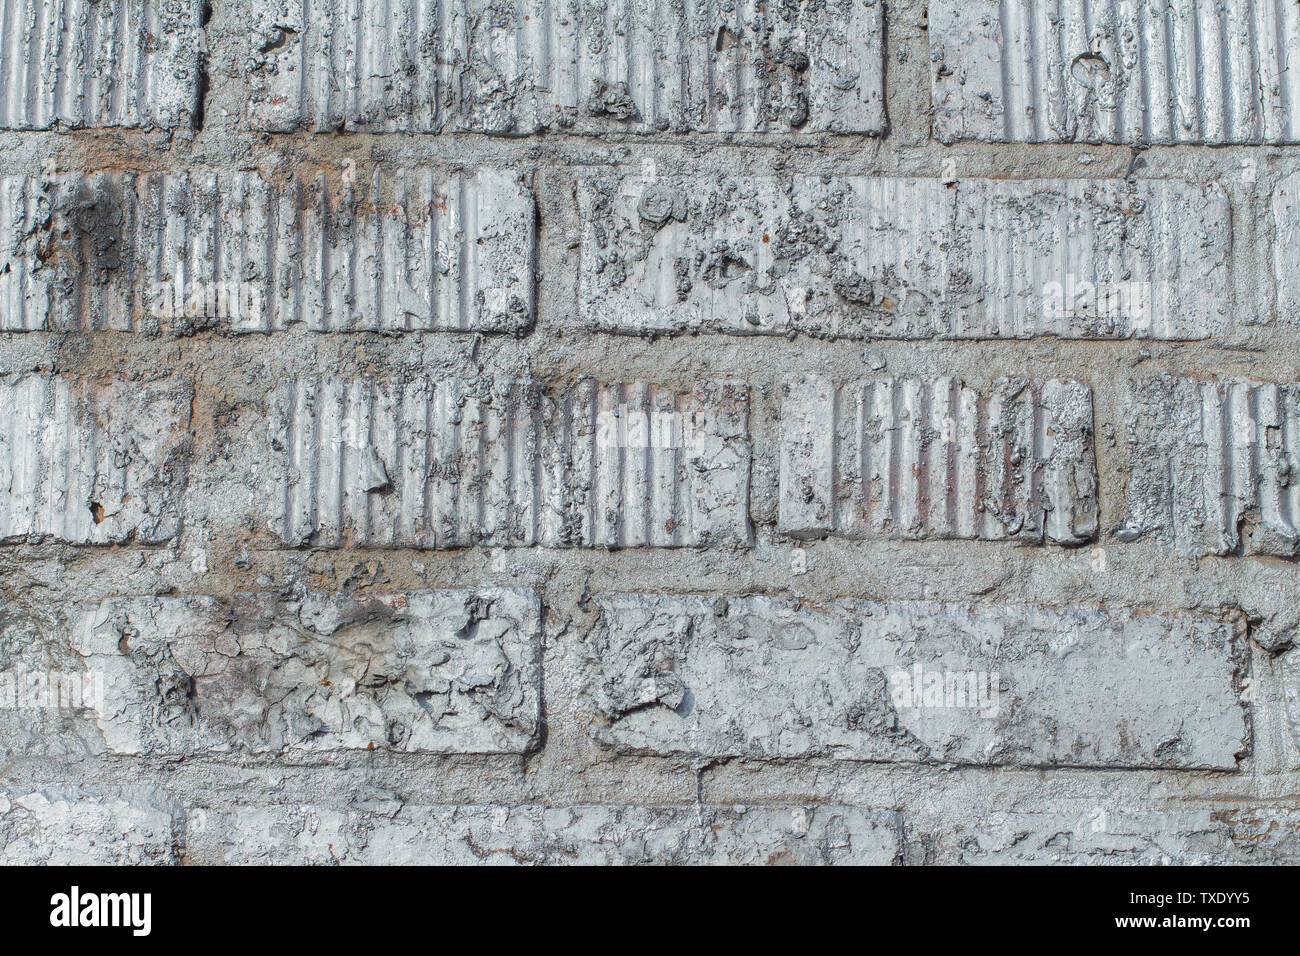 Background Of Old Brick Wall Texture Painted Silver Paint Stock